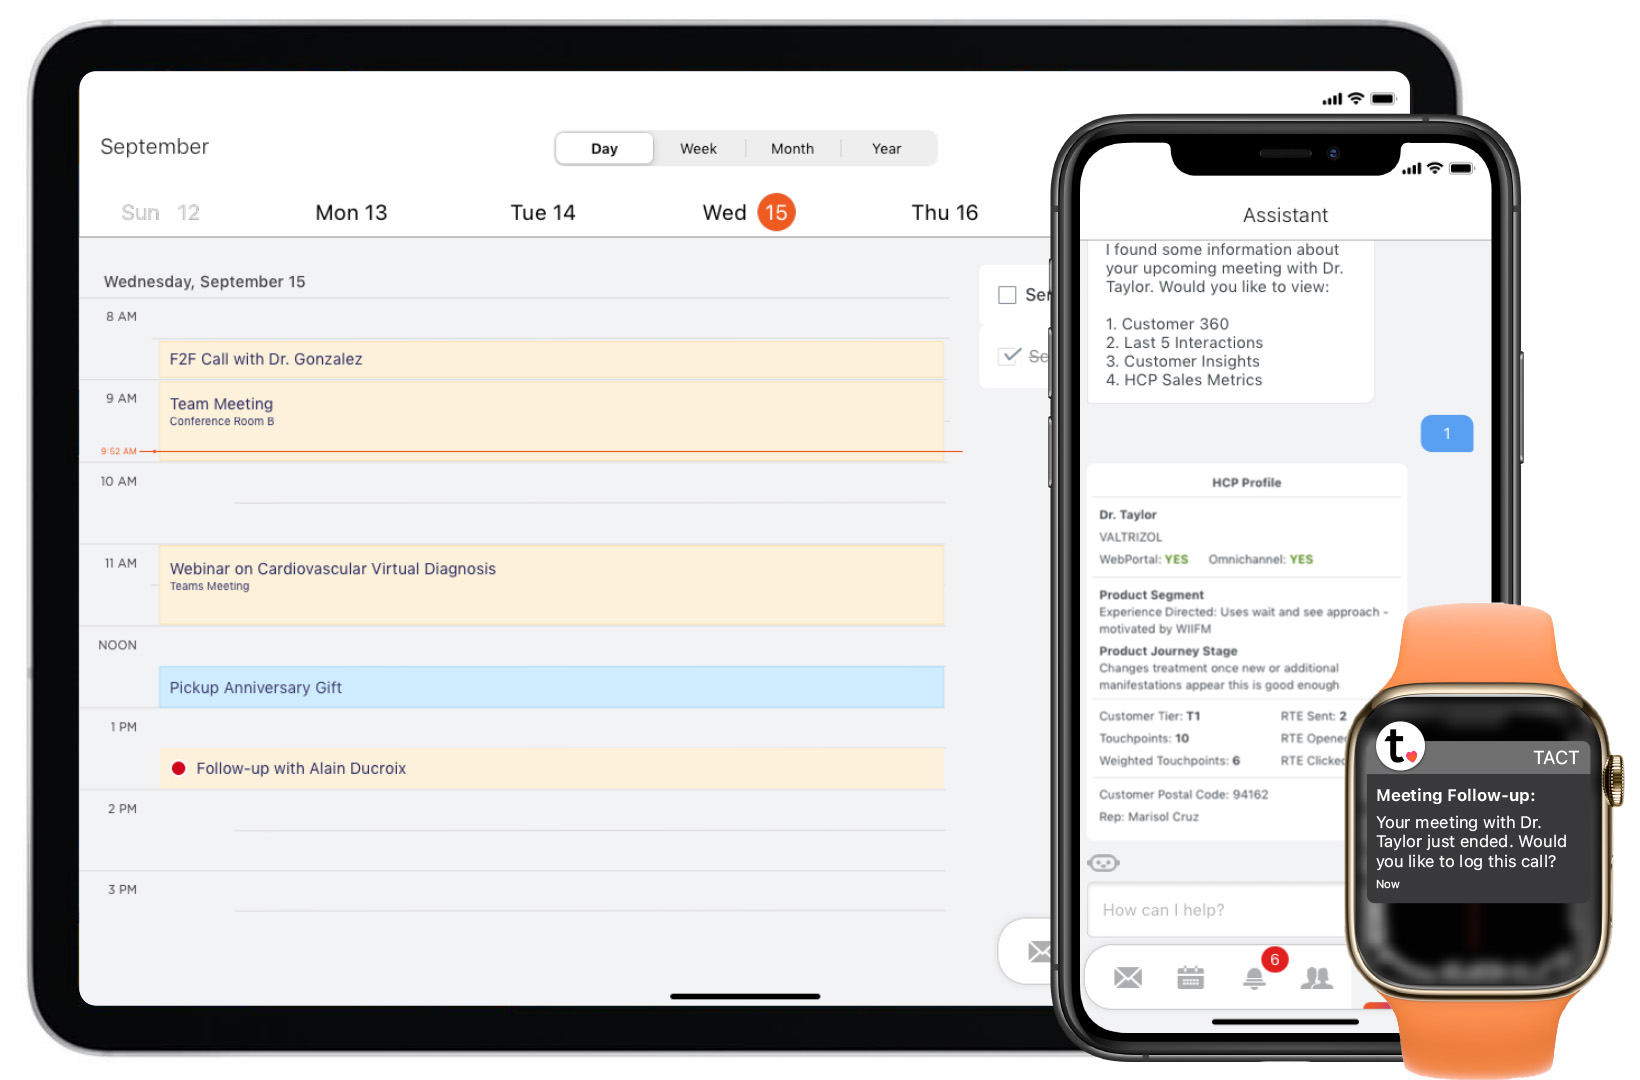 Tact integrates to personal productivity tools